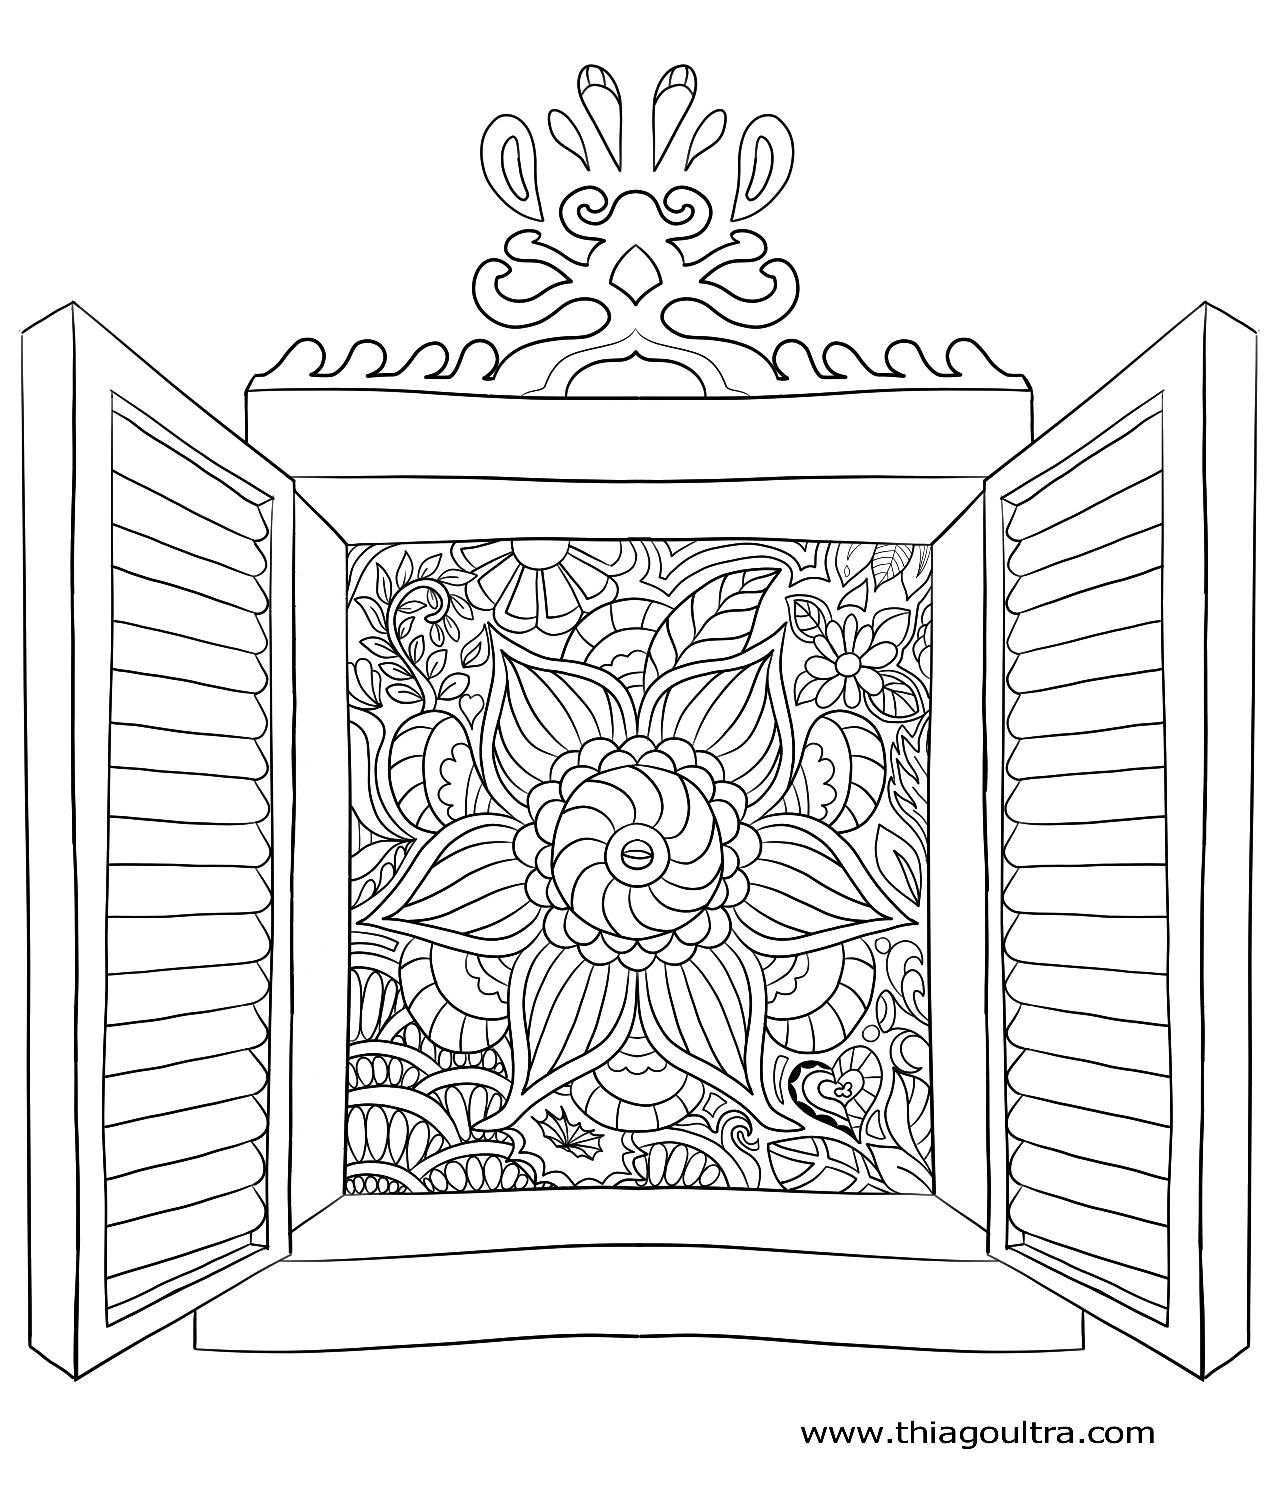 Pin By Jessica Leighann On Adult Coloring Pages In